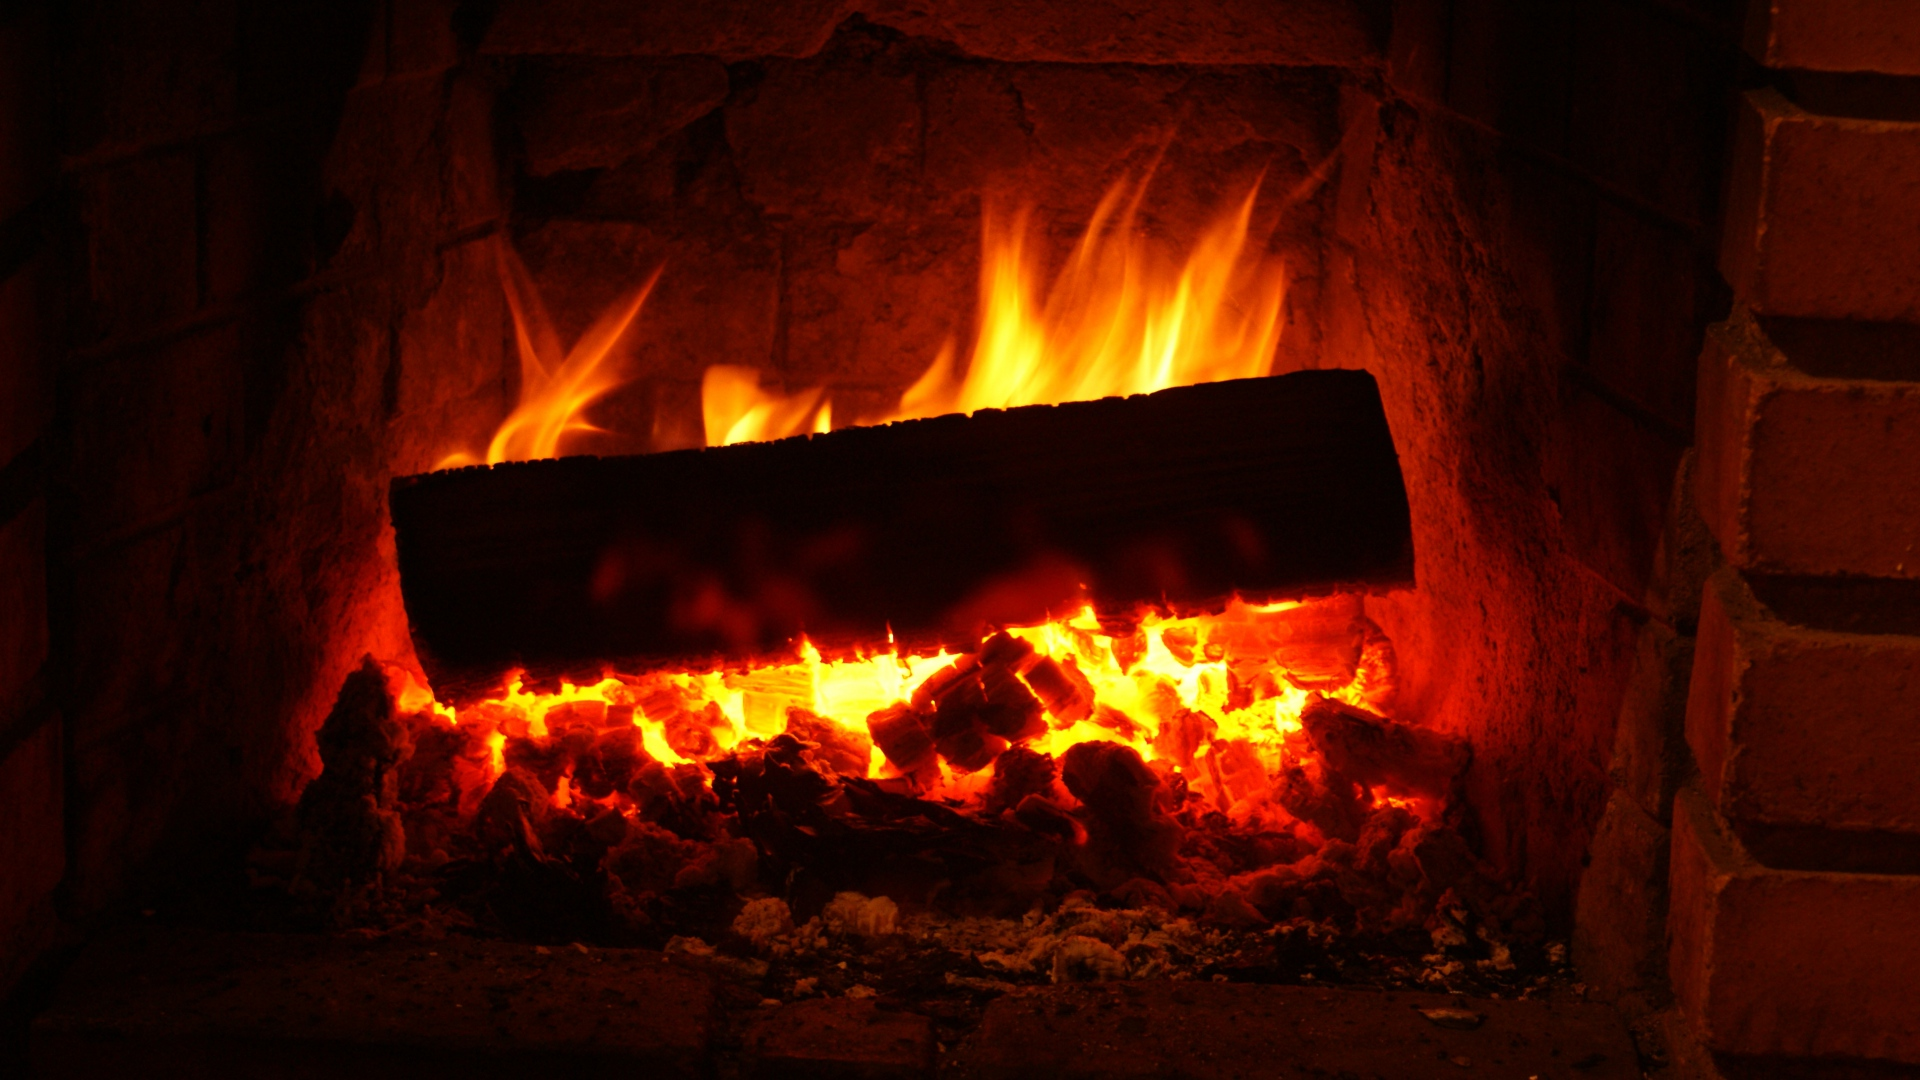 flaming fireplace wallpaper - photo #2